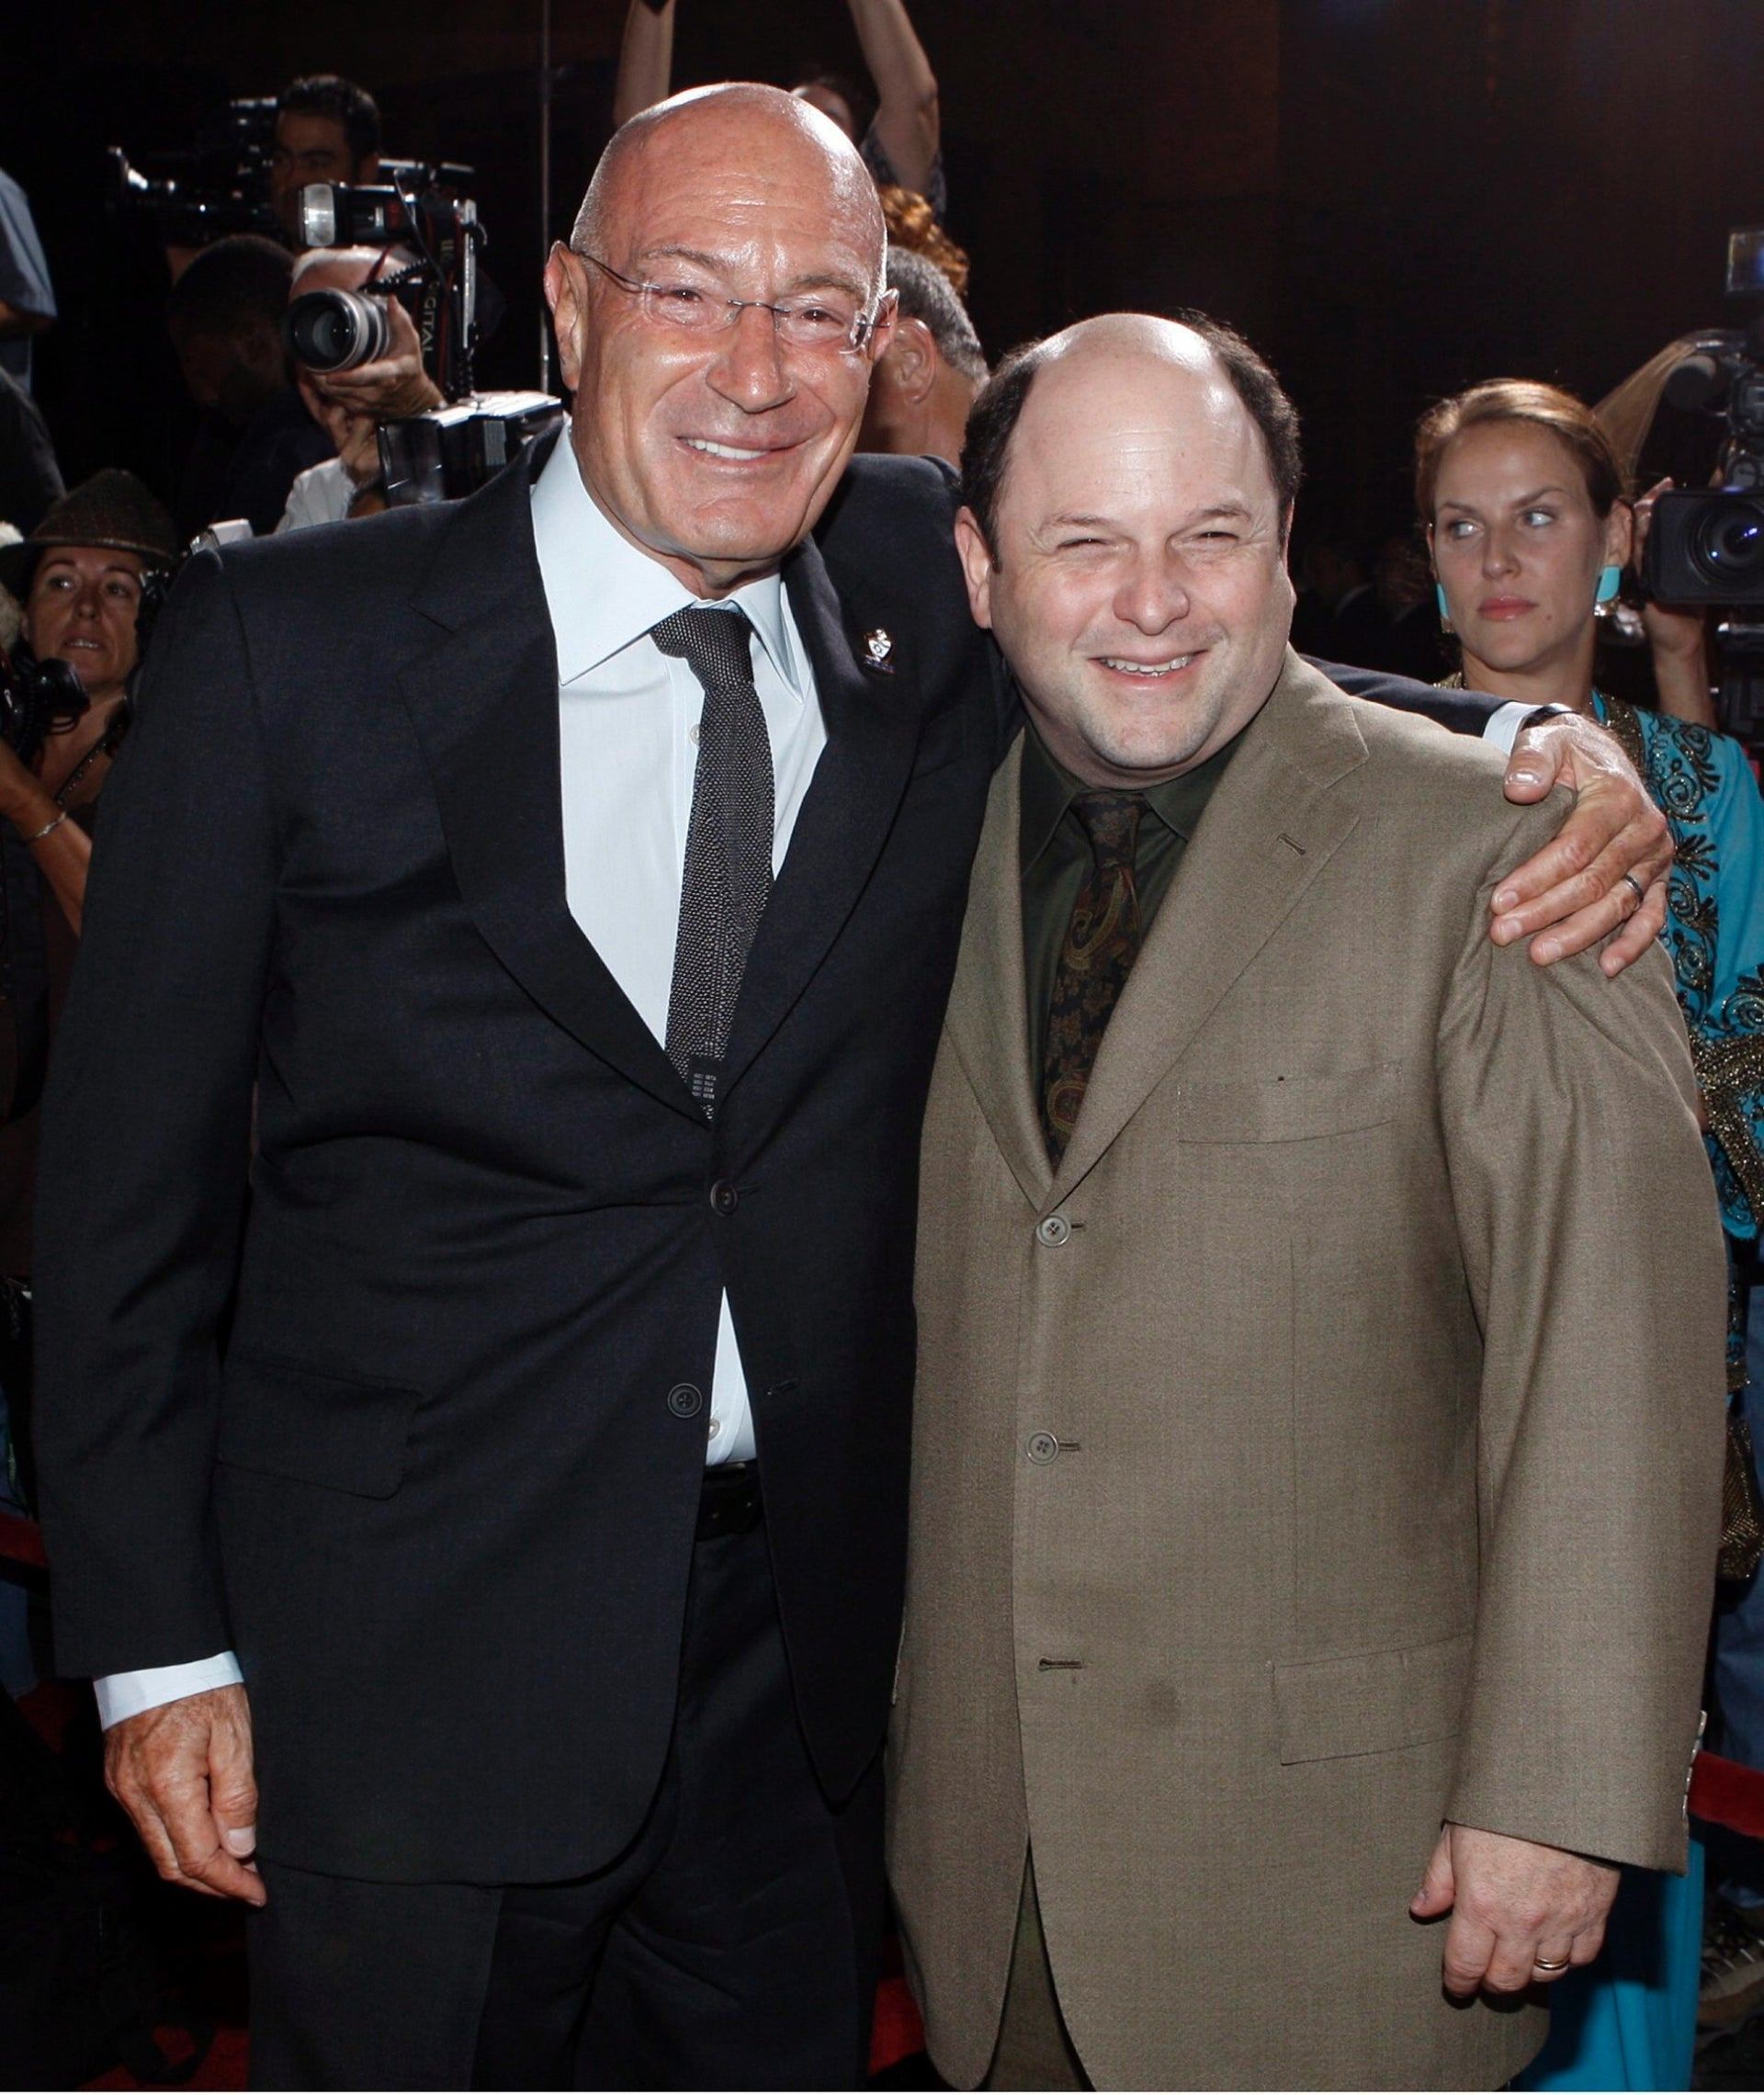 Arnon Milchan and Jason Alexander pose together at the 'From Vision to Reality' event celebrating the 60th Anniversary of the state of Israel in Los Angeles on Thursday, Sept. 18, 2008.